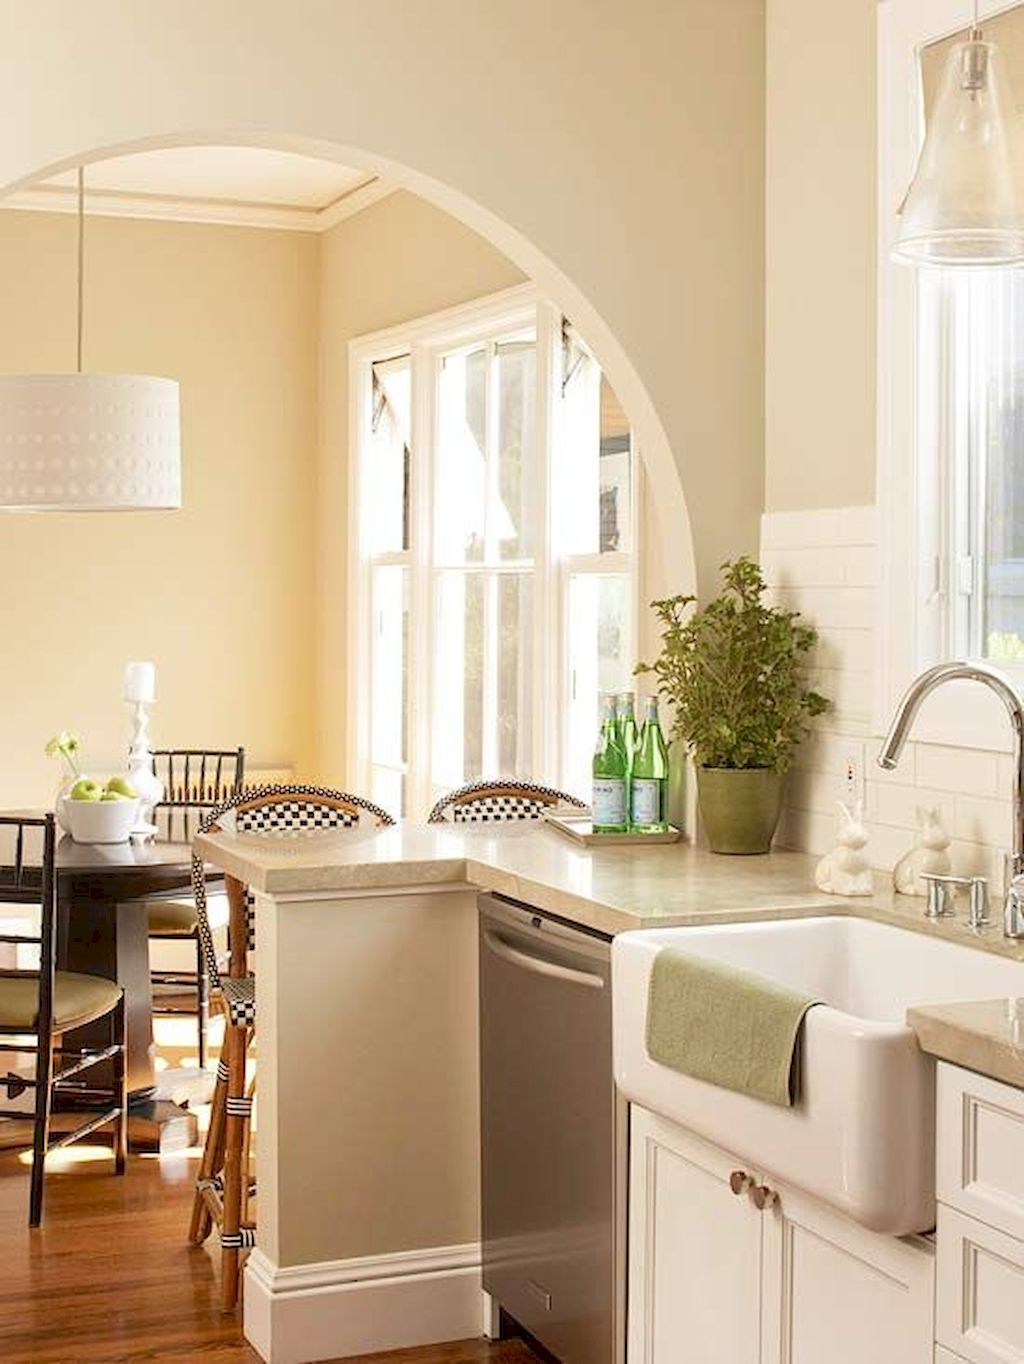 Kitchen Plan And Design For Small Room (10)